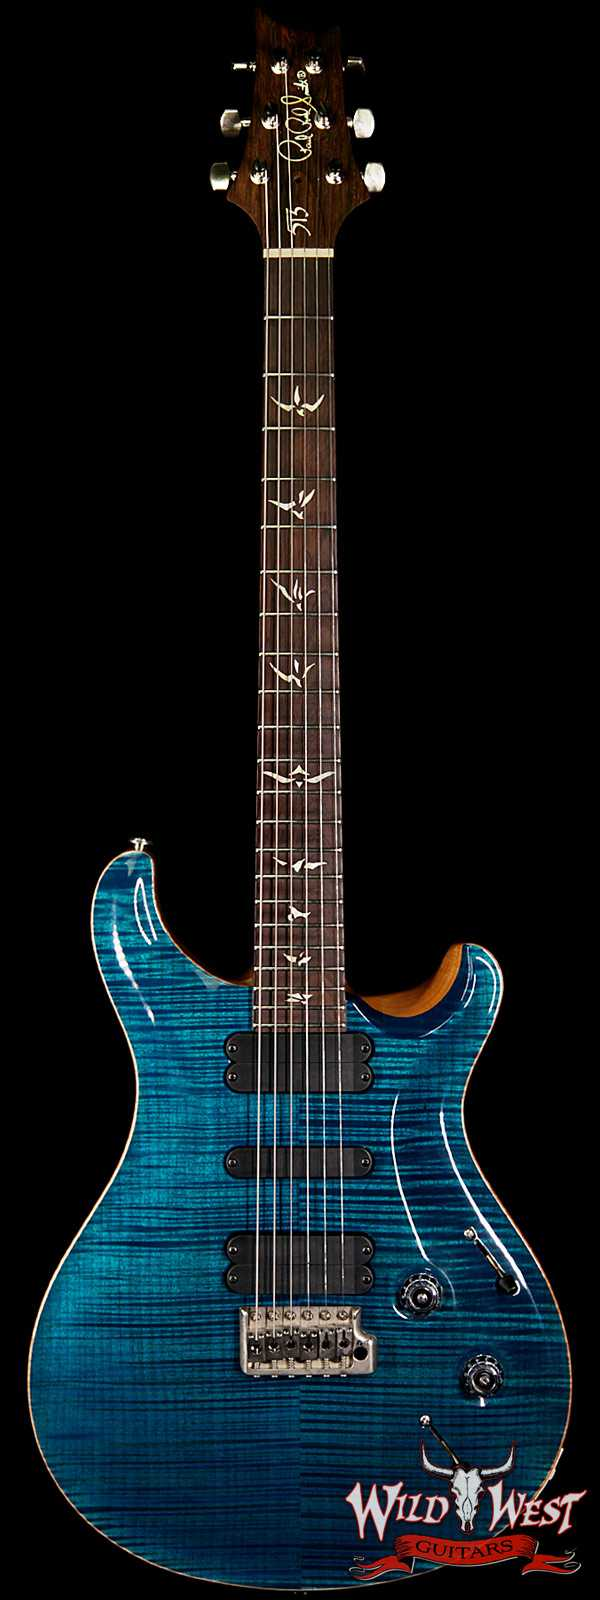 2005 PRS Artist Package 513 Flame top Brazilian Rosewood Neck Aquamarine